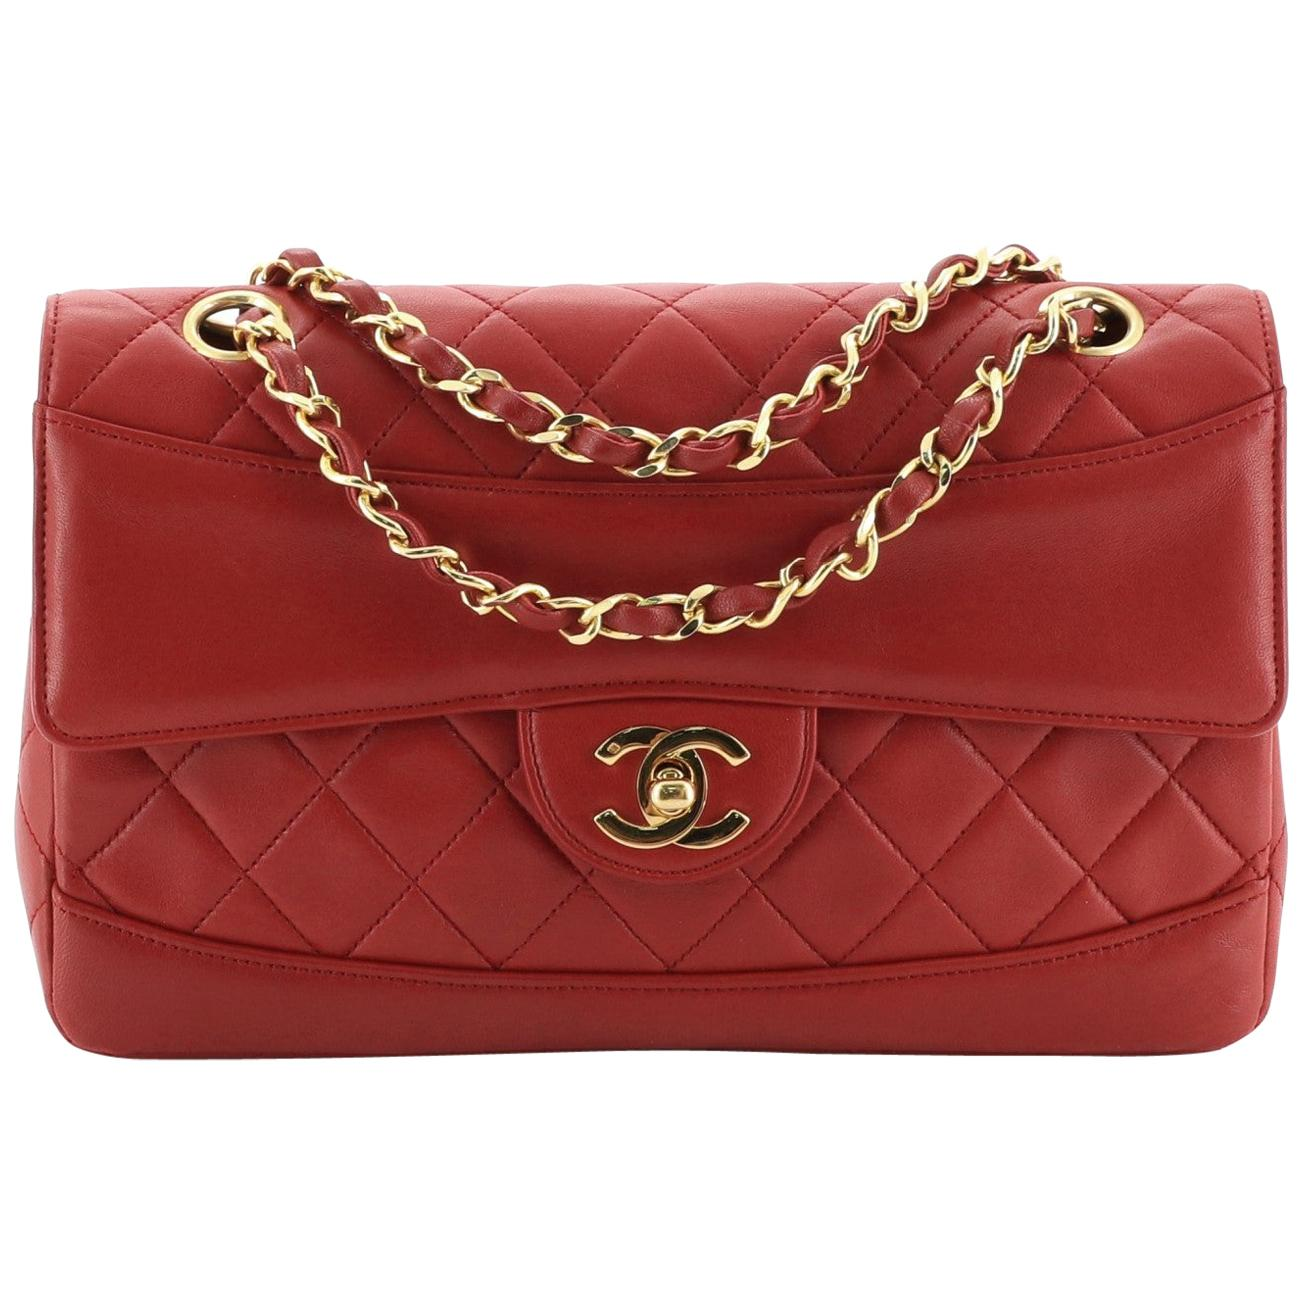 Red Chanel Bags 166 For On 1stdibs